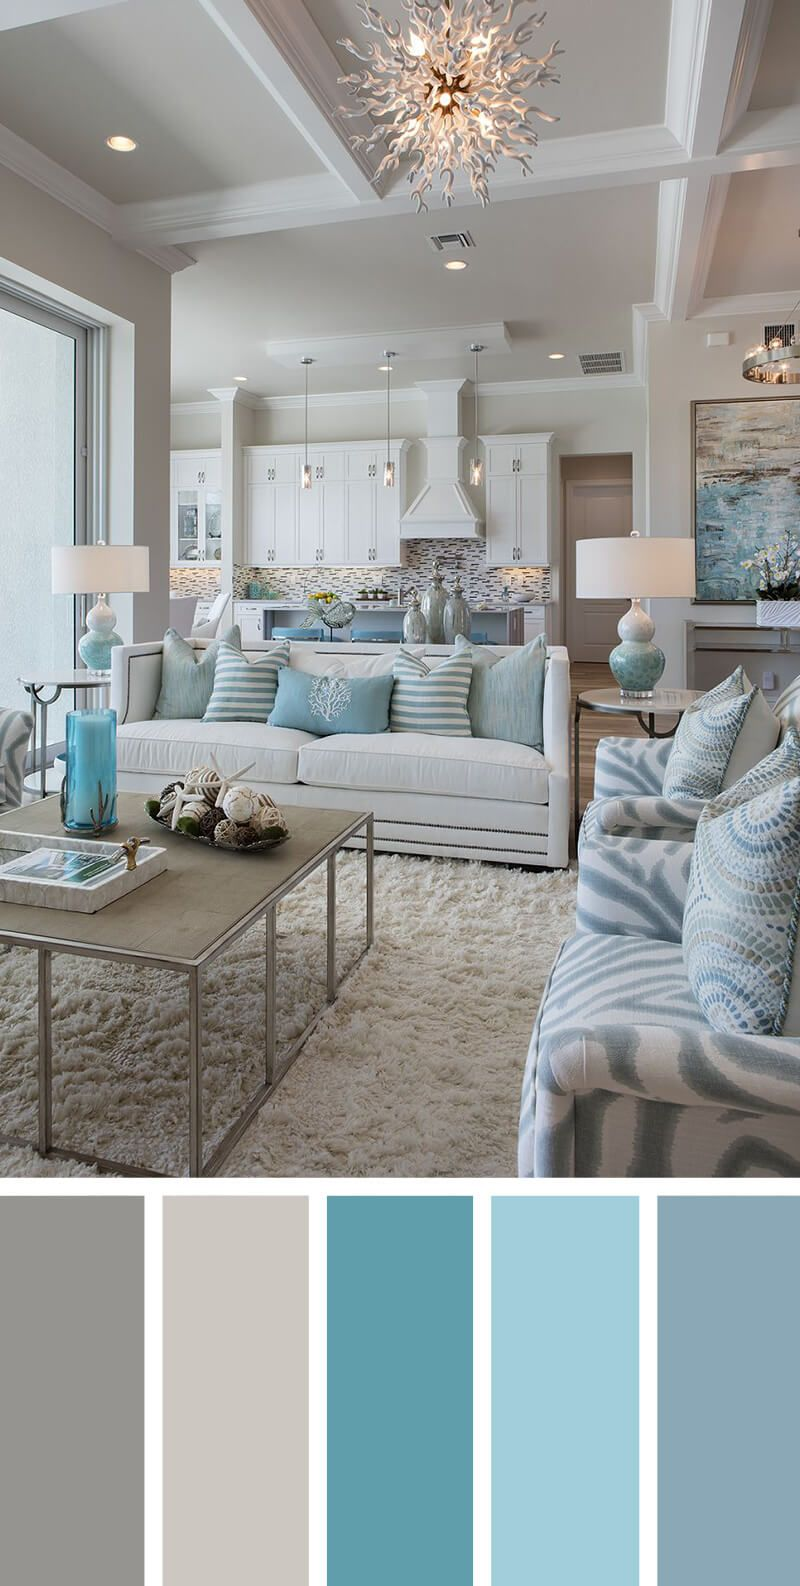 Love This Color Palette So Relaxing Good Living Room Colors Living Room Color Schemes Coastal Living Room #relaxing #living #room #colors